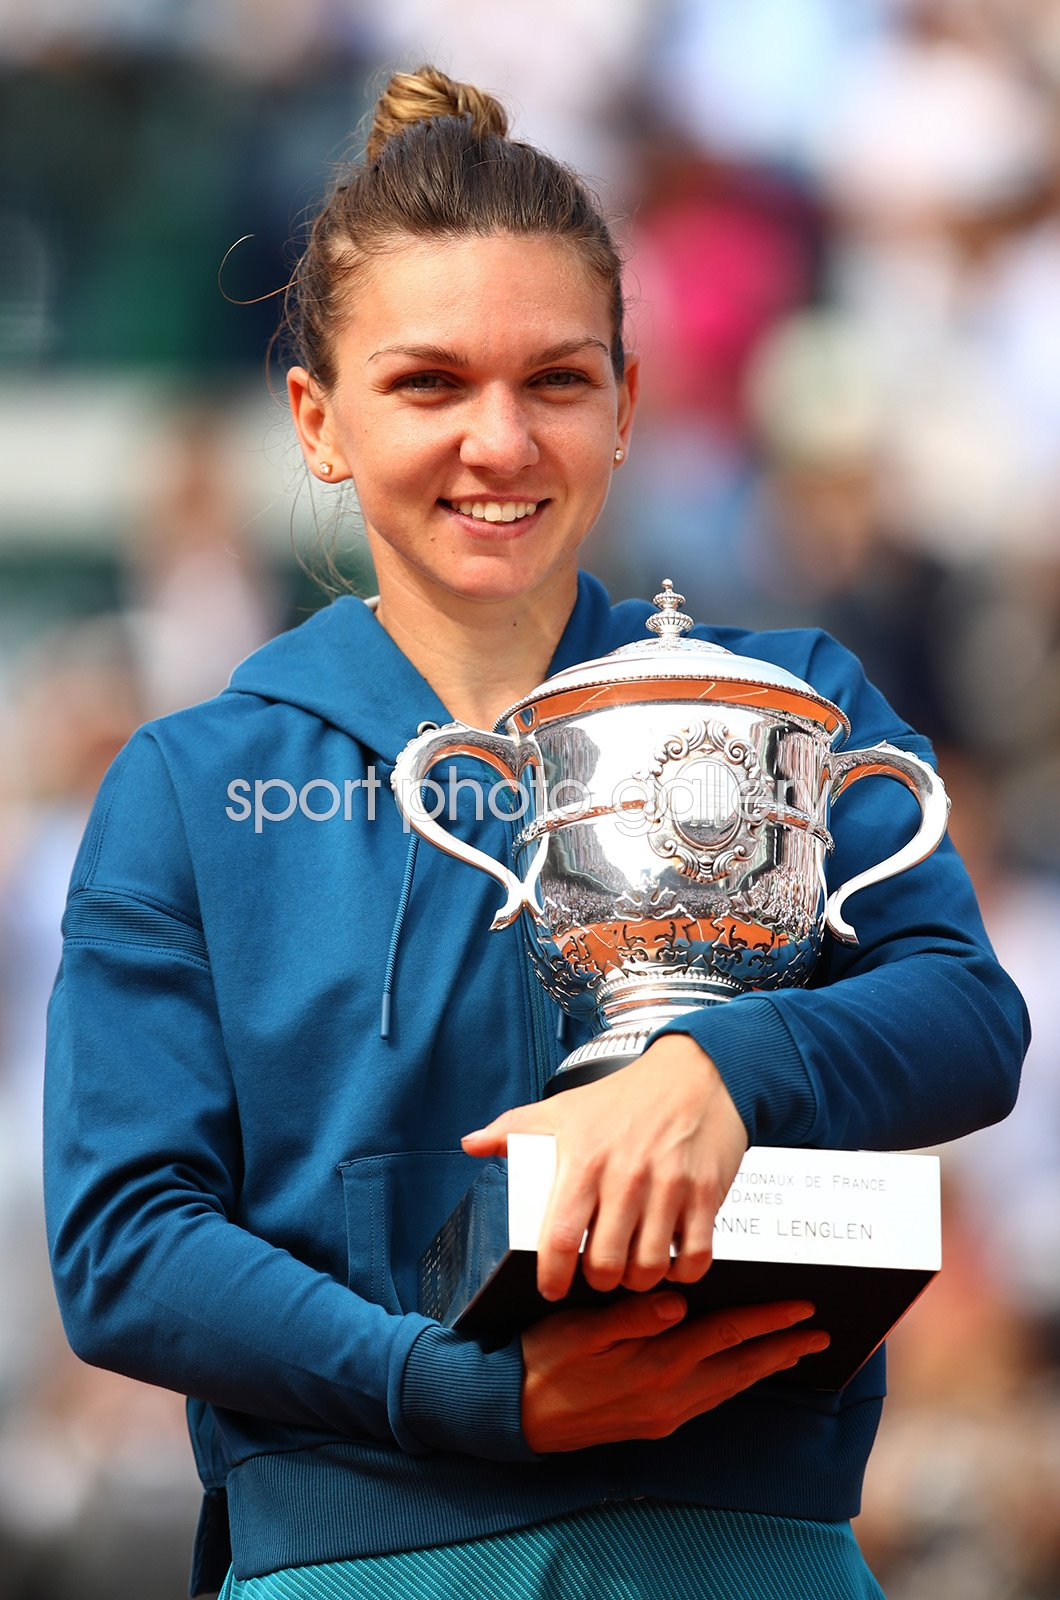 Simona Halep Romania 2018 French Open Champion